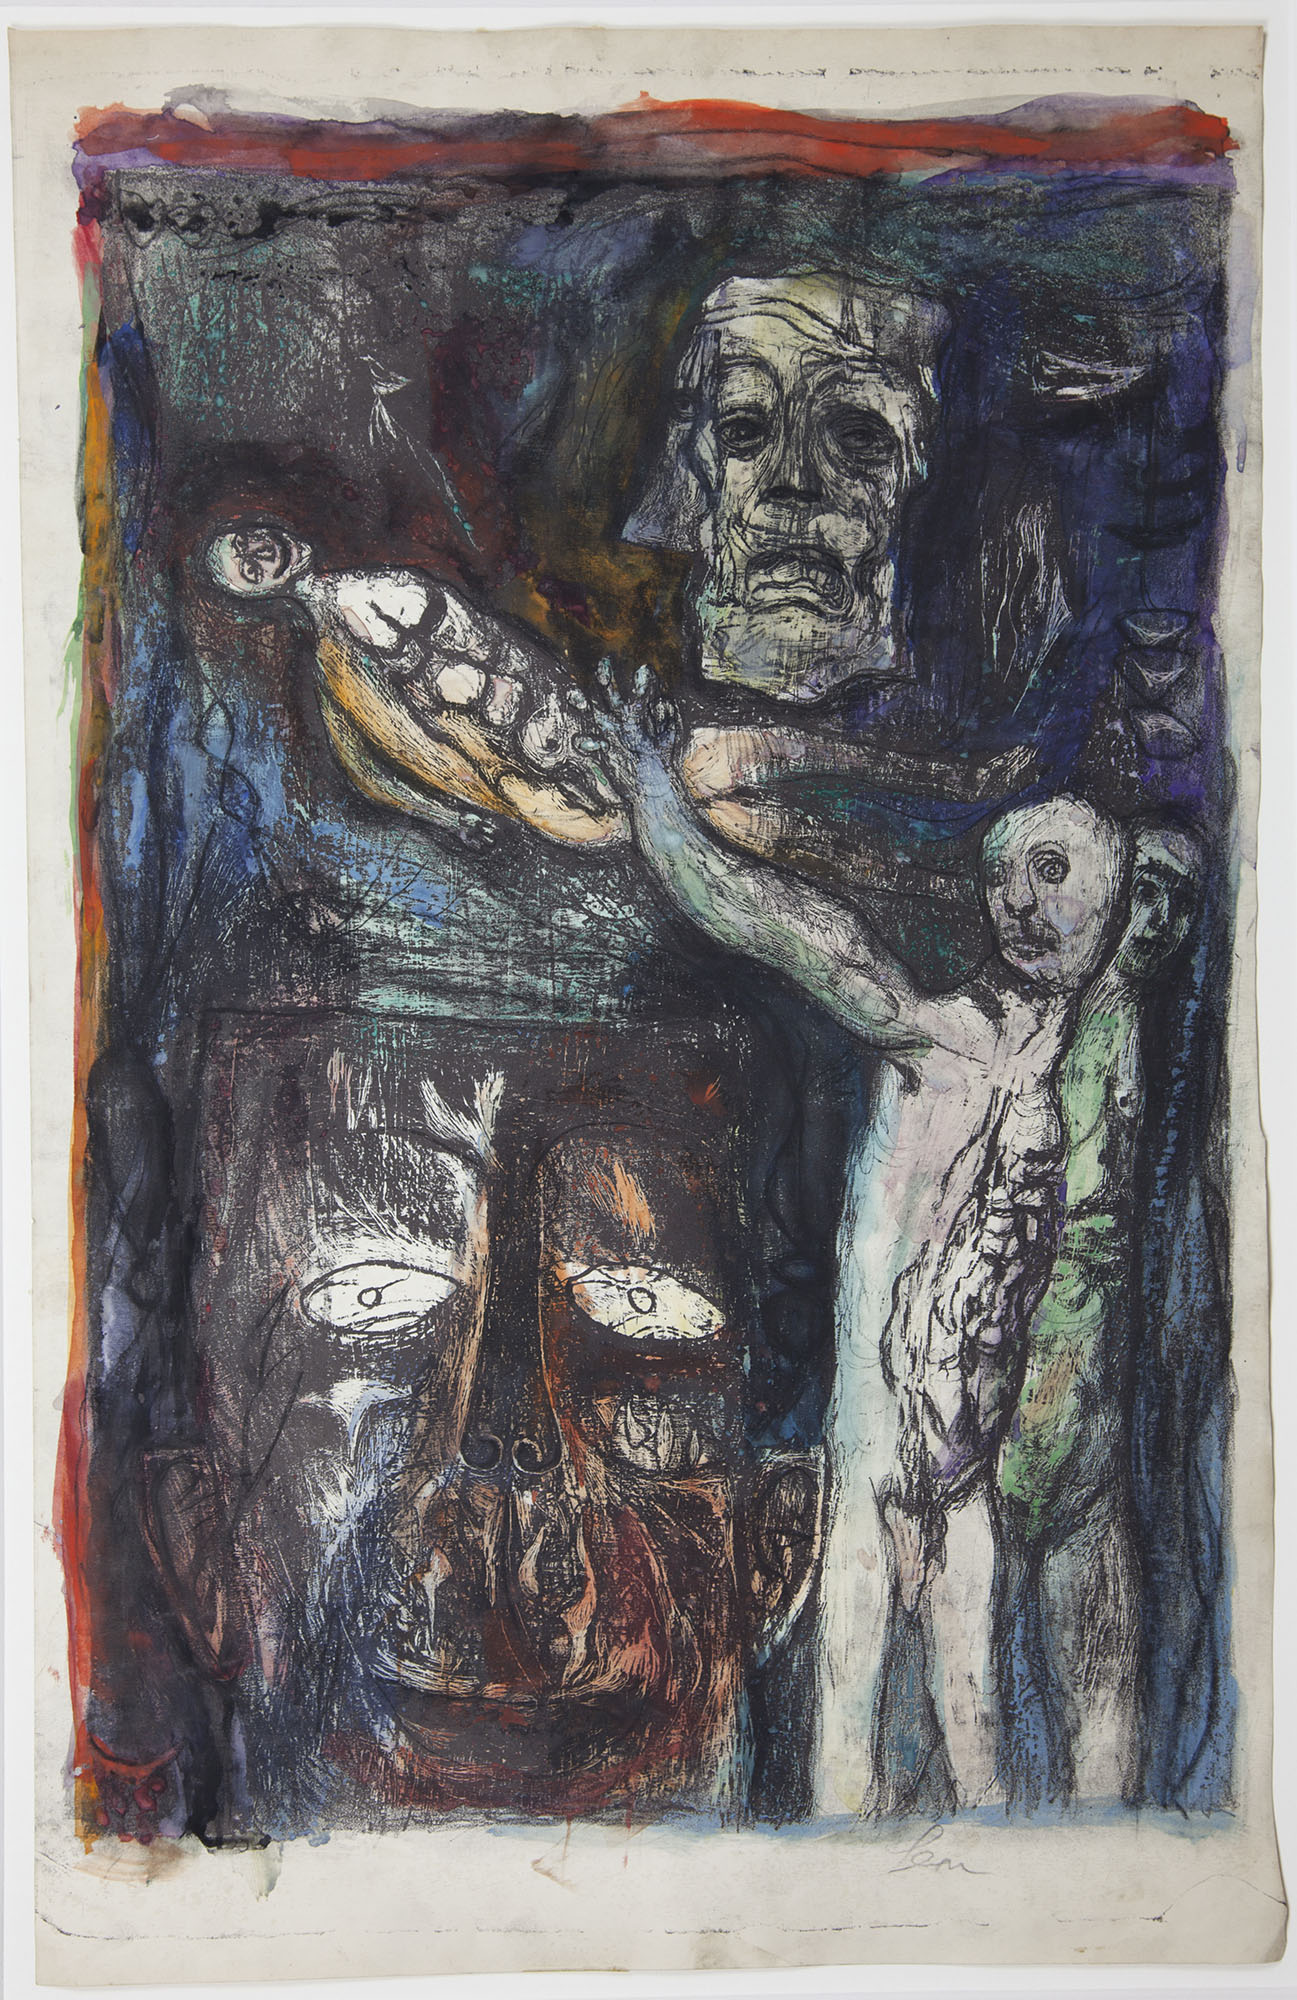 Leon Golub, Carnival, late 20th century. Lithograph, watercolor, pastel, and charcoal on paper. Collection of DePaul Art Museum, Art Acquisition Endowment, 2010.19